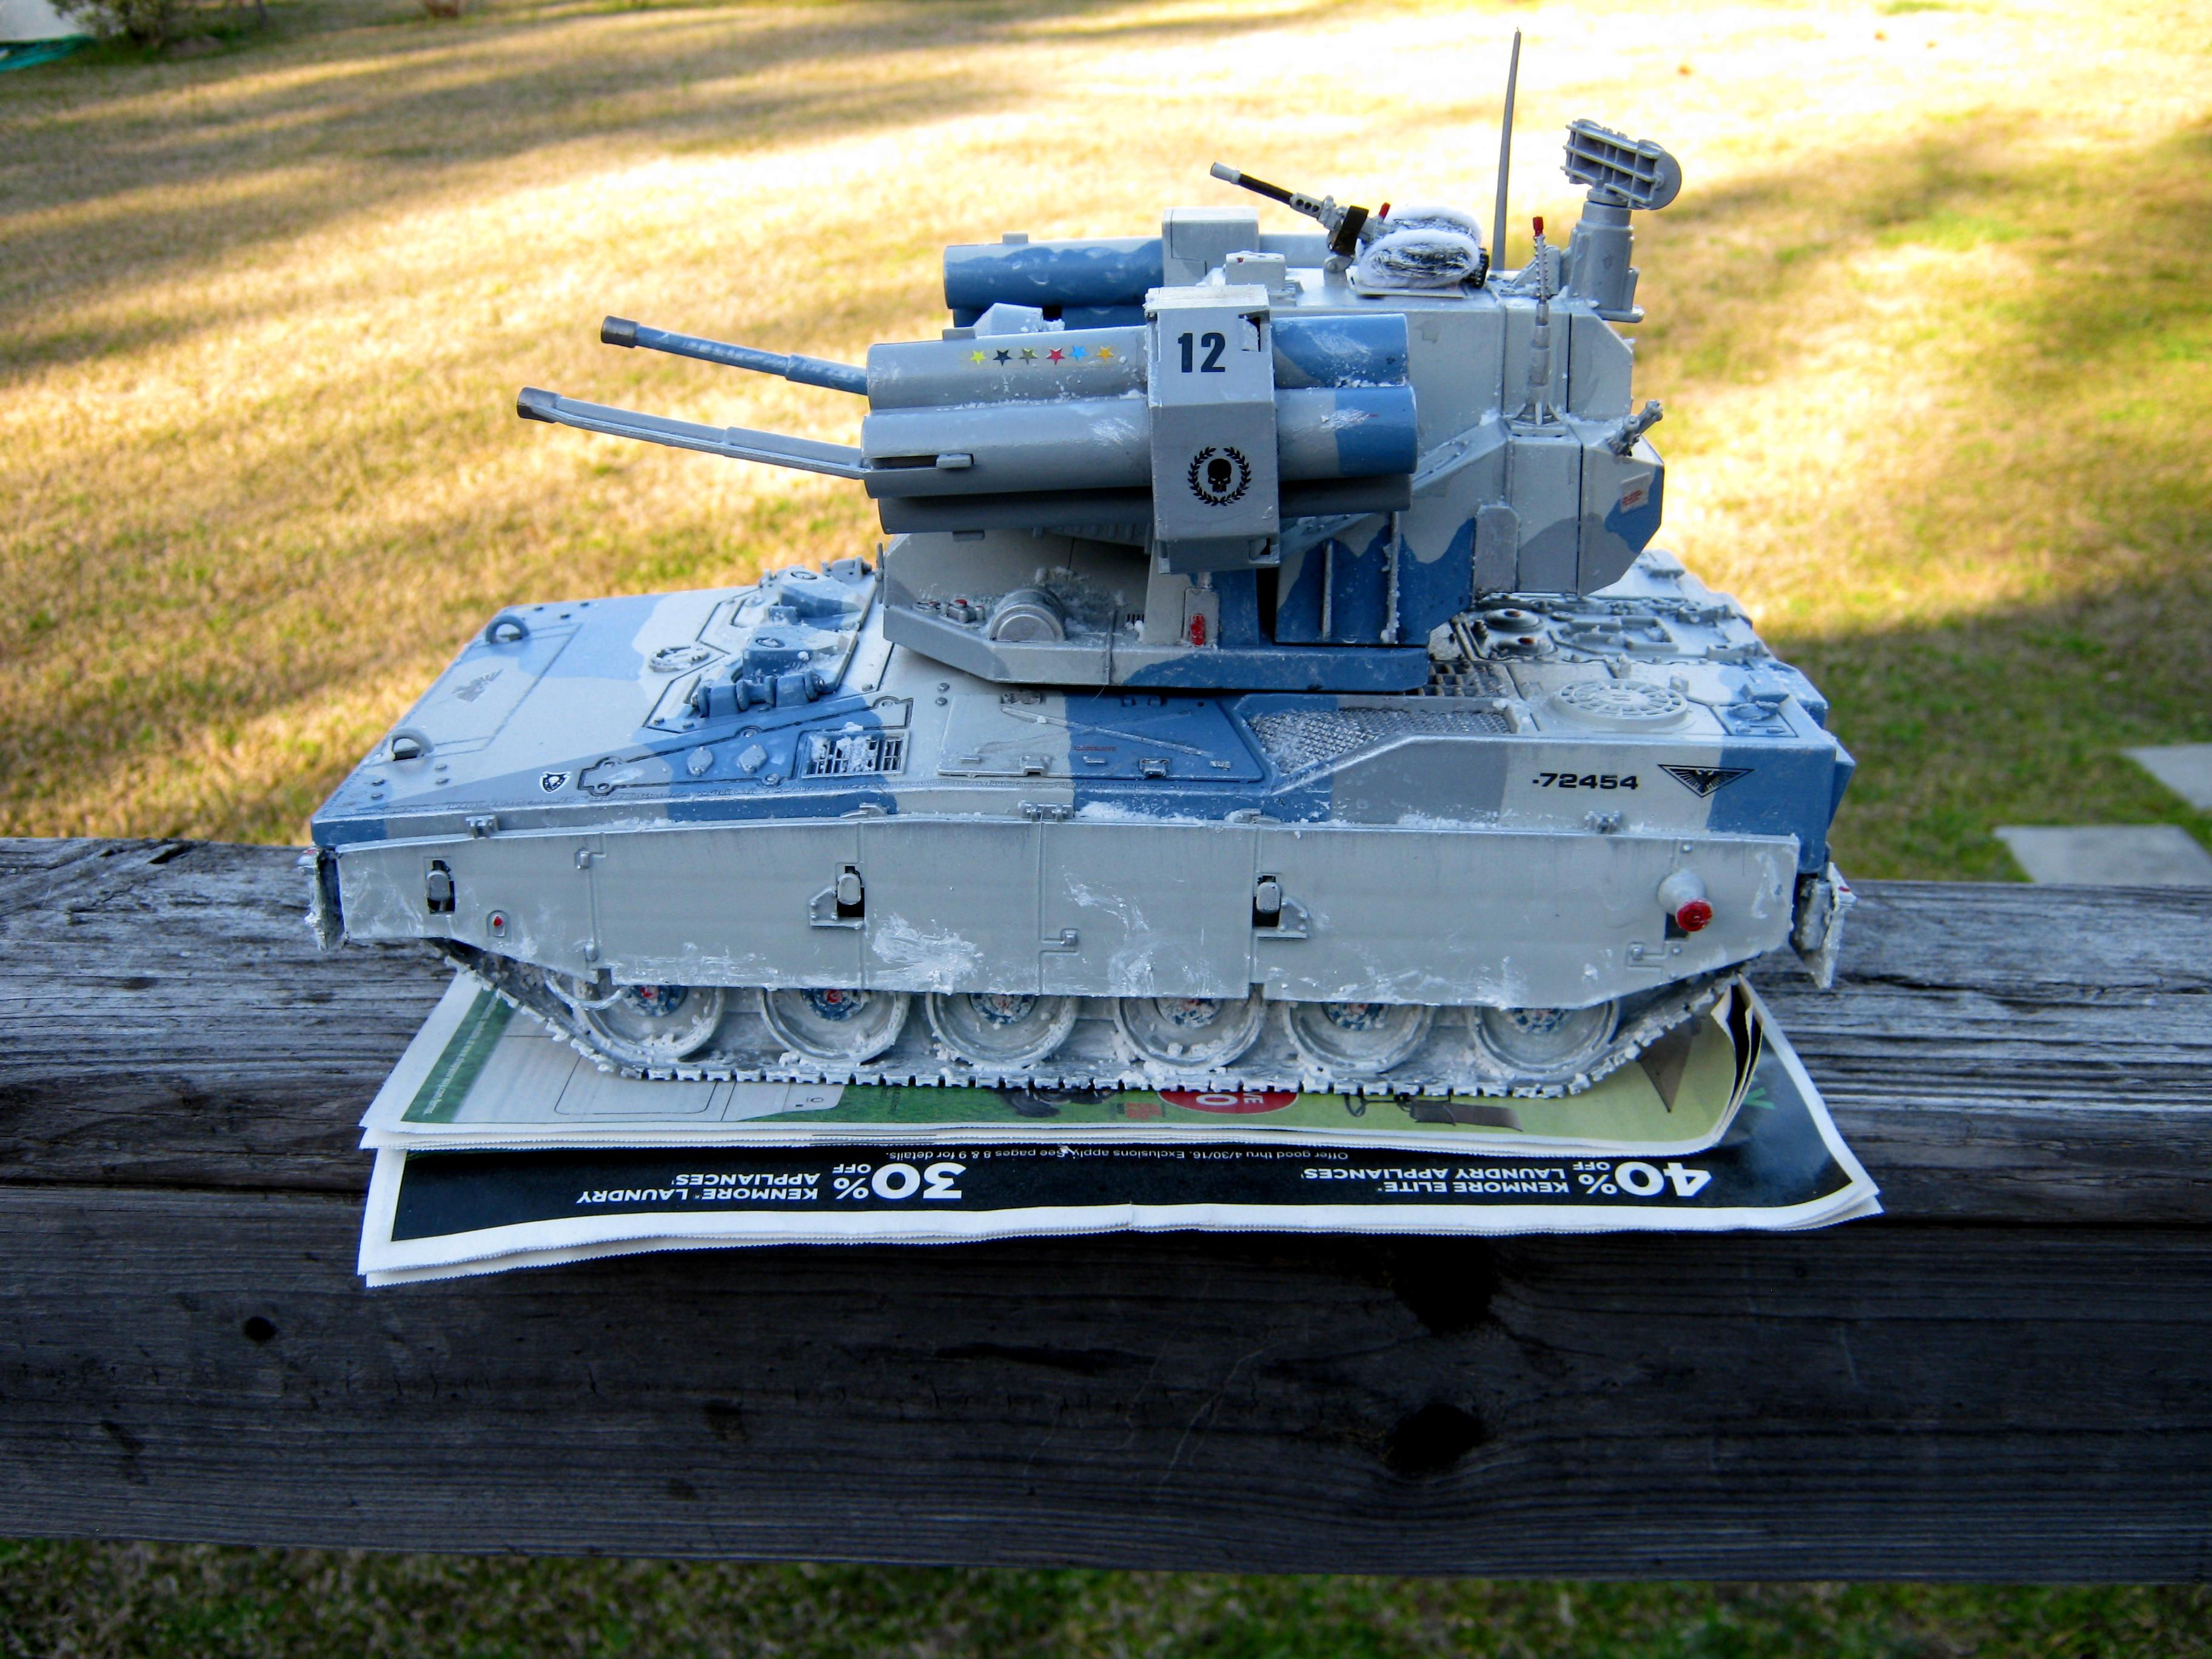 Adv, Afv, Air Defense Vehicle, Anti-aircraft, Artillery, Conversion, Equalizer, G.i. Joe, Imperial, Self-propelled, Super-heavy, Tank, Toy